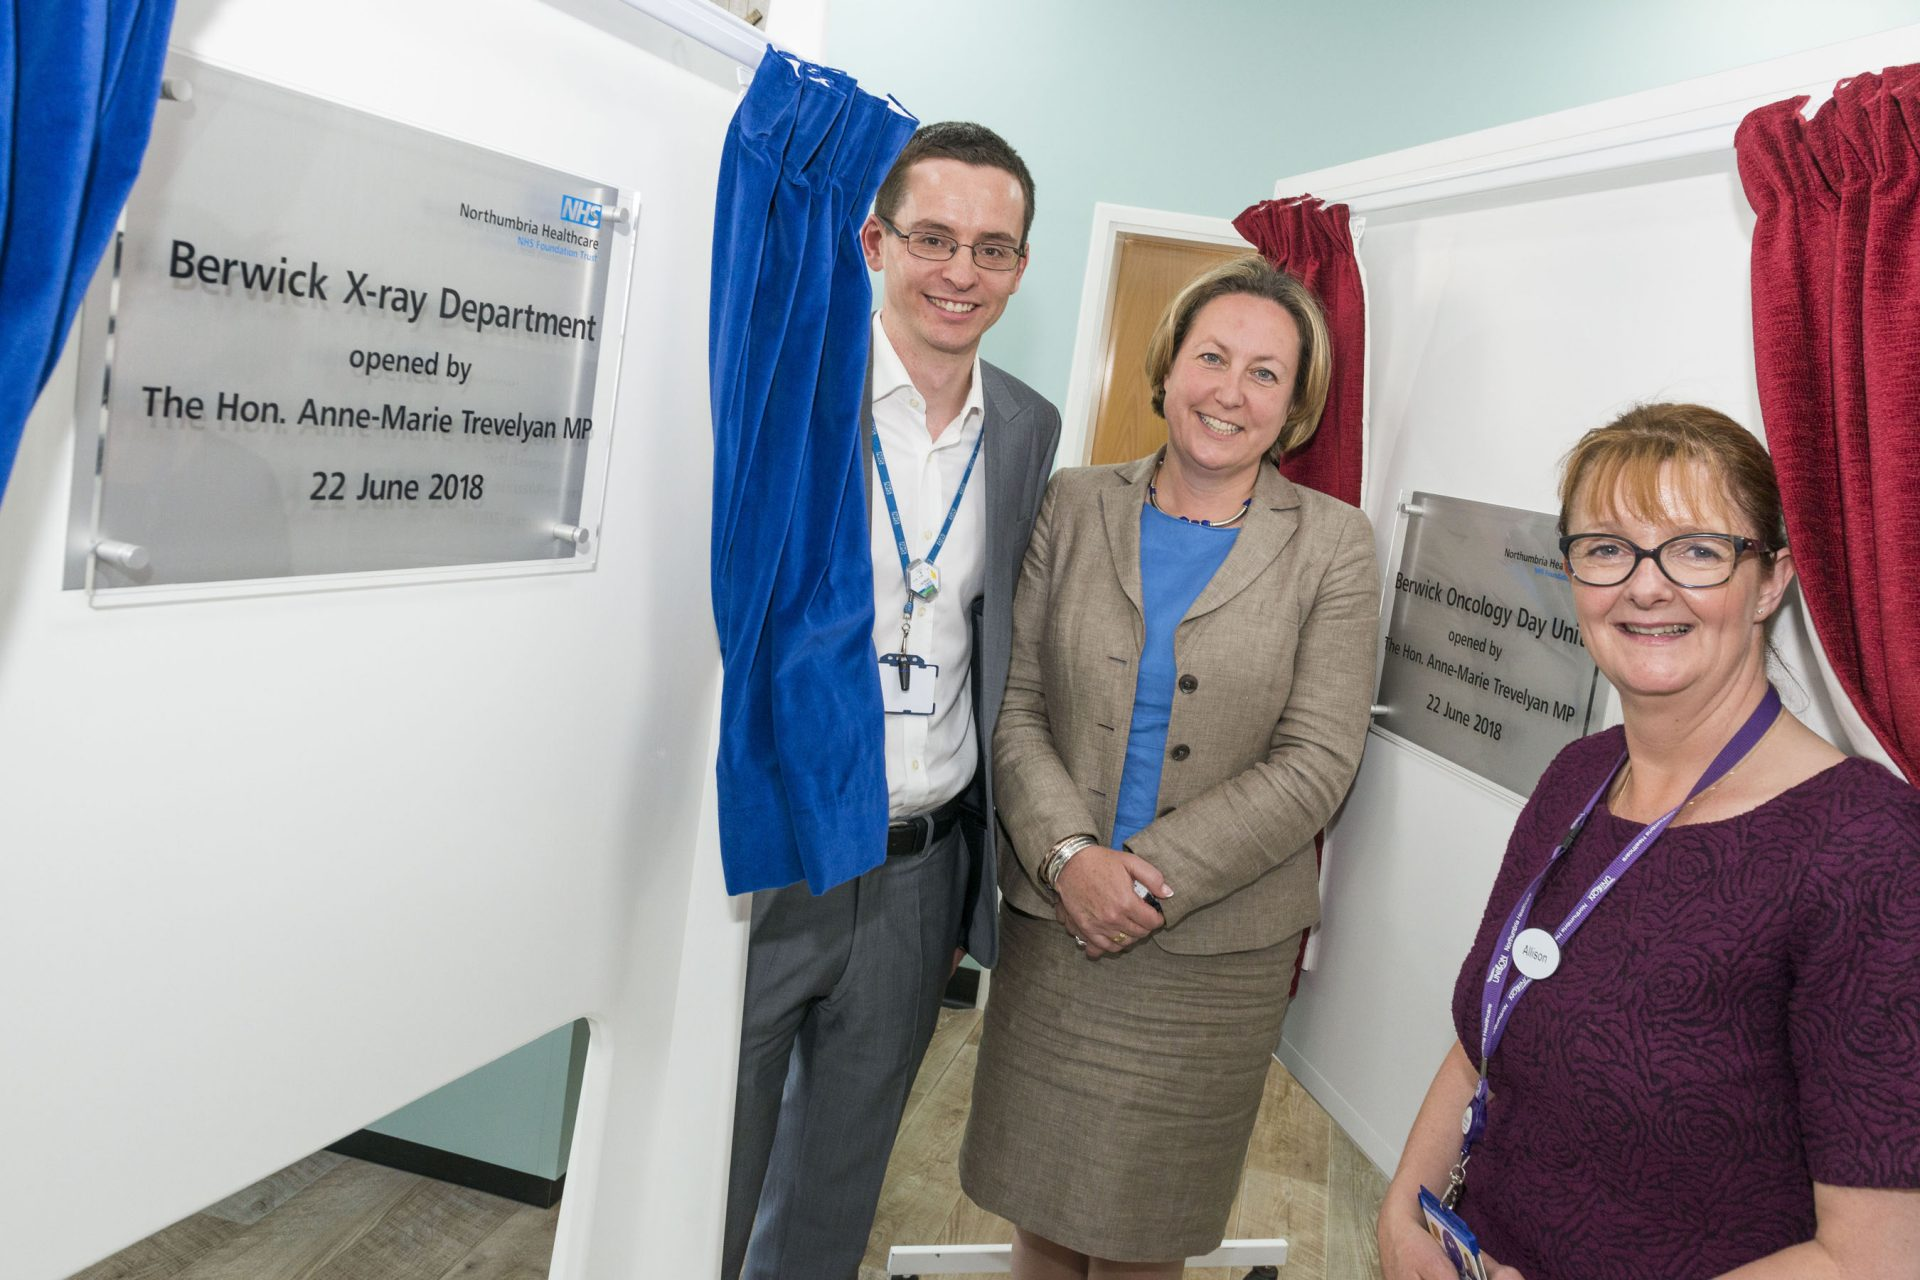 Double investment in patient care in Berwick unveiled